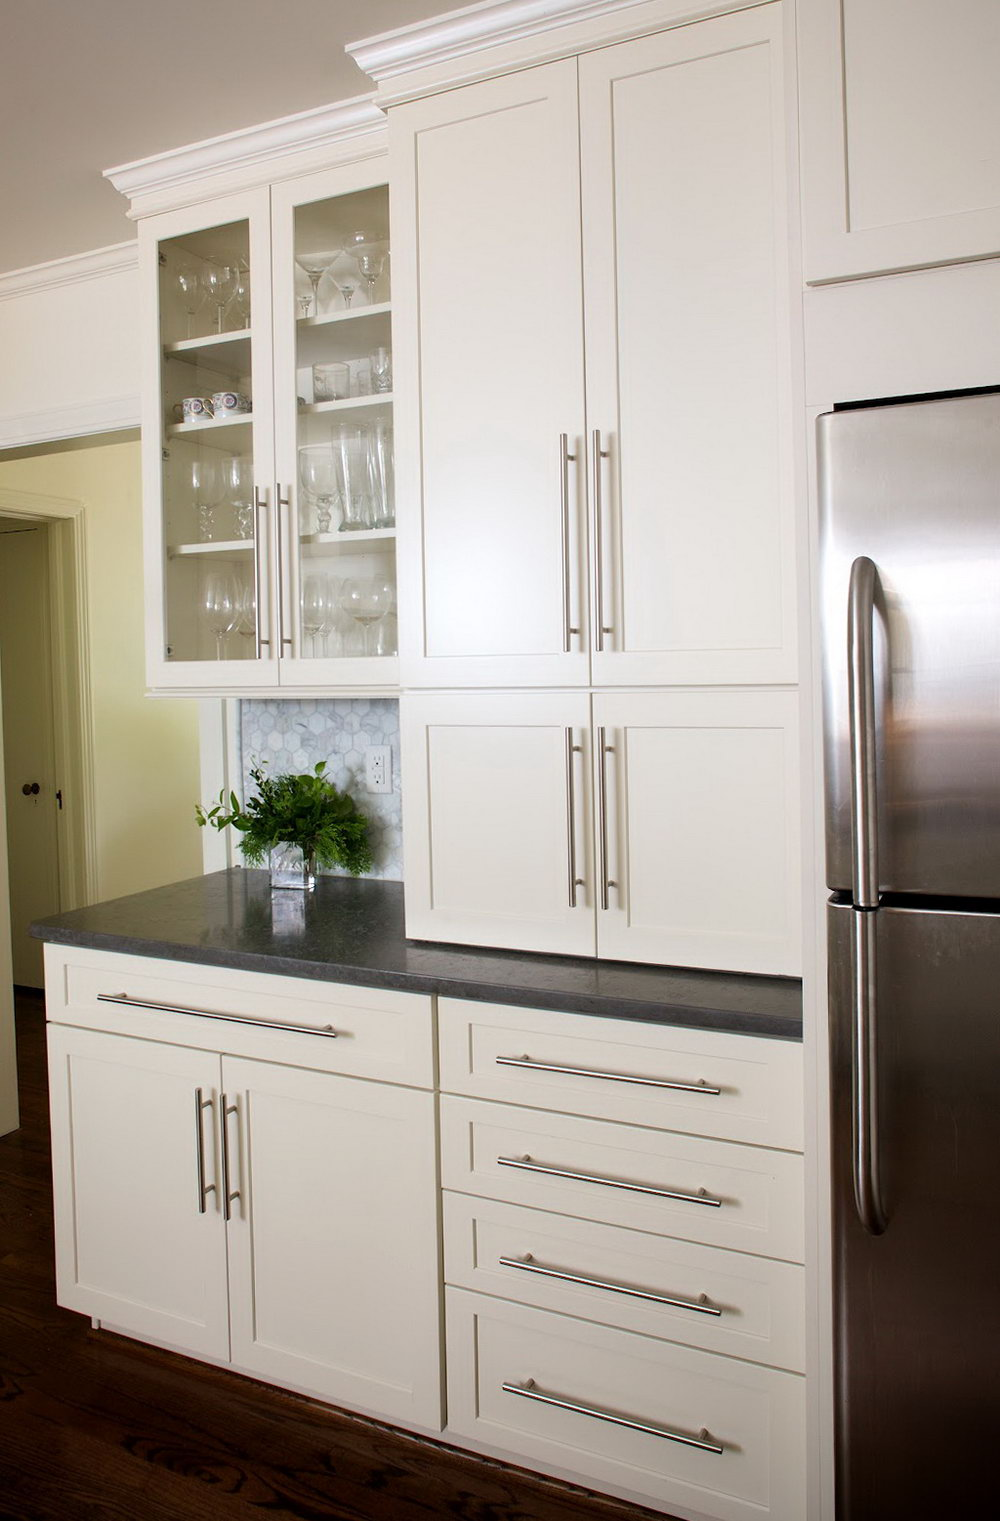 White Handles For Kitchen Cabinets